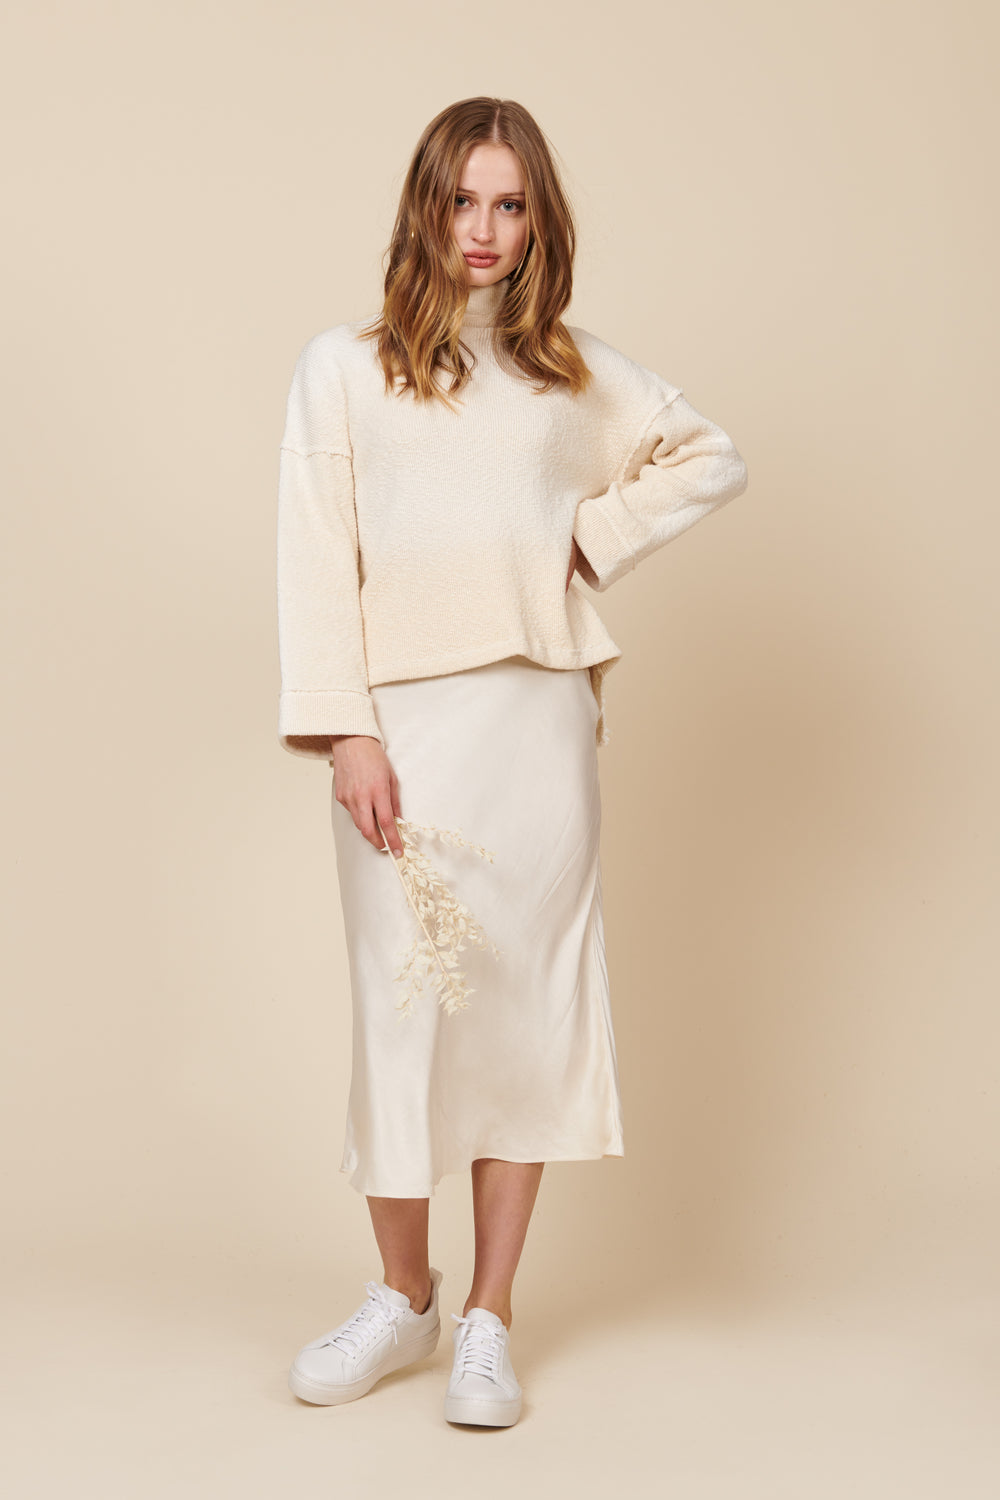 Diana Skirt in Cream - Whimsy & Row